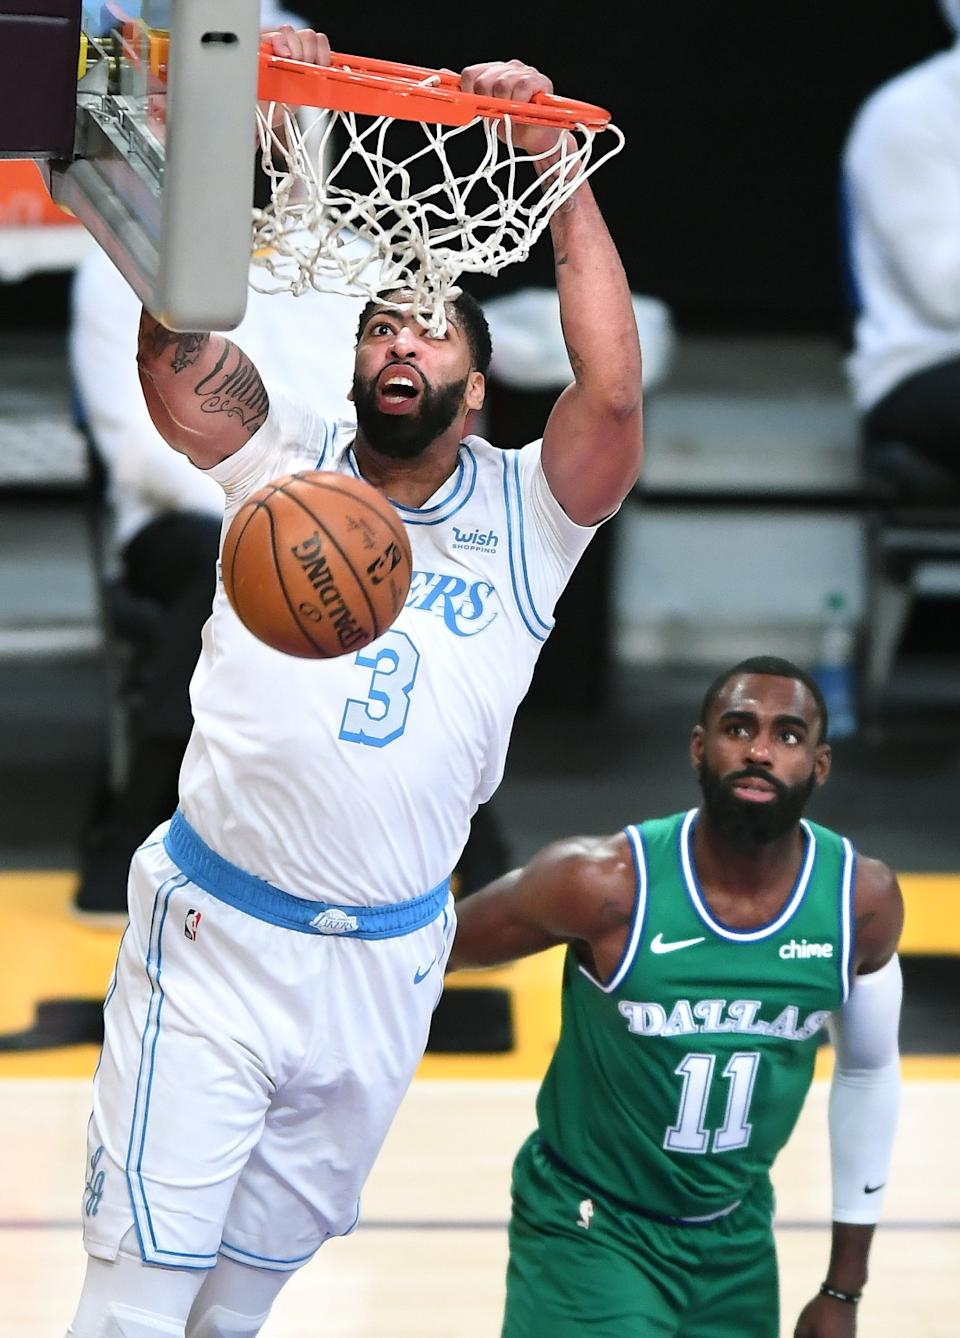 Lakers forward Anthony Davis dunks over Dallas Mavericks guard Tim Hardaway Jr. in the second quarter.